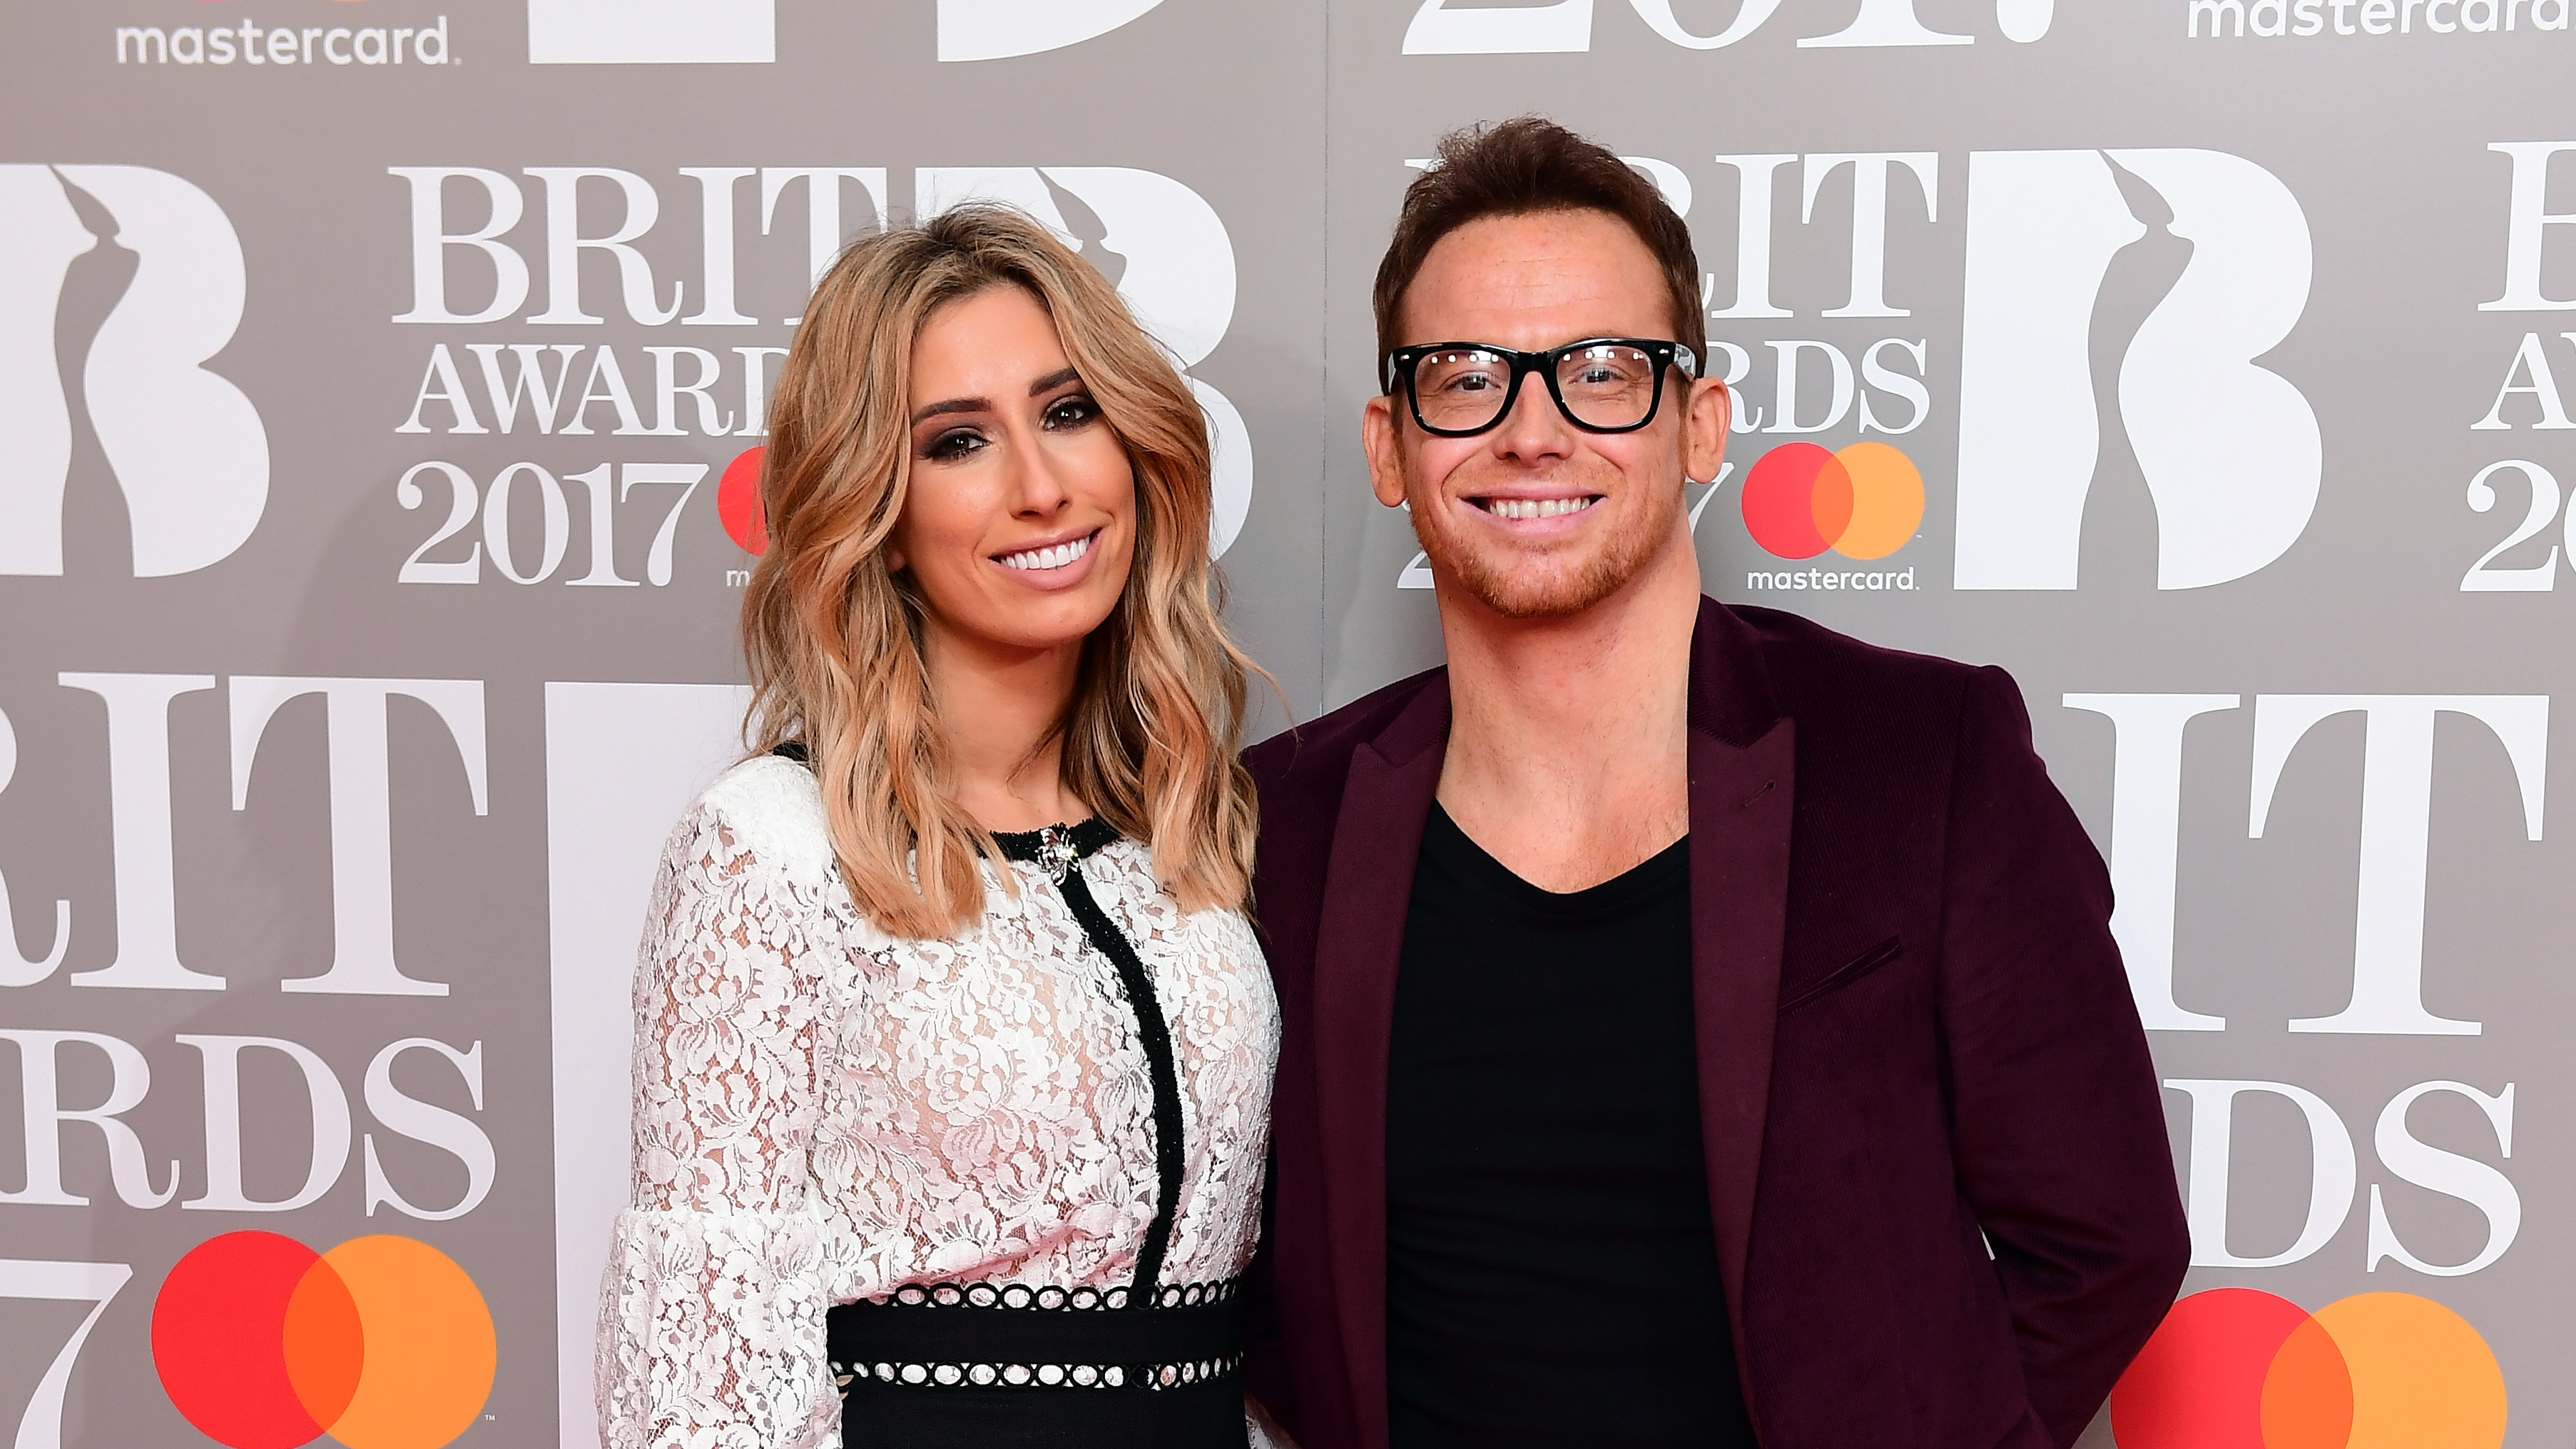 Stacey Solomon And Joe Swash Announce She's Pregnant With Fourth Child